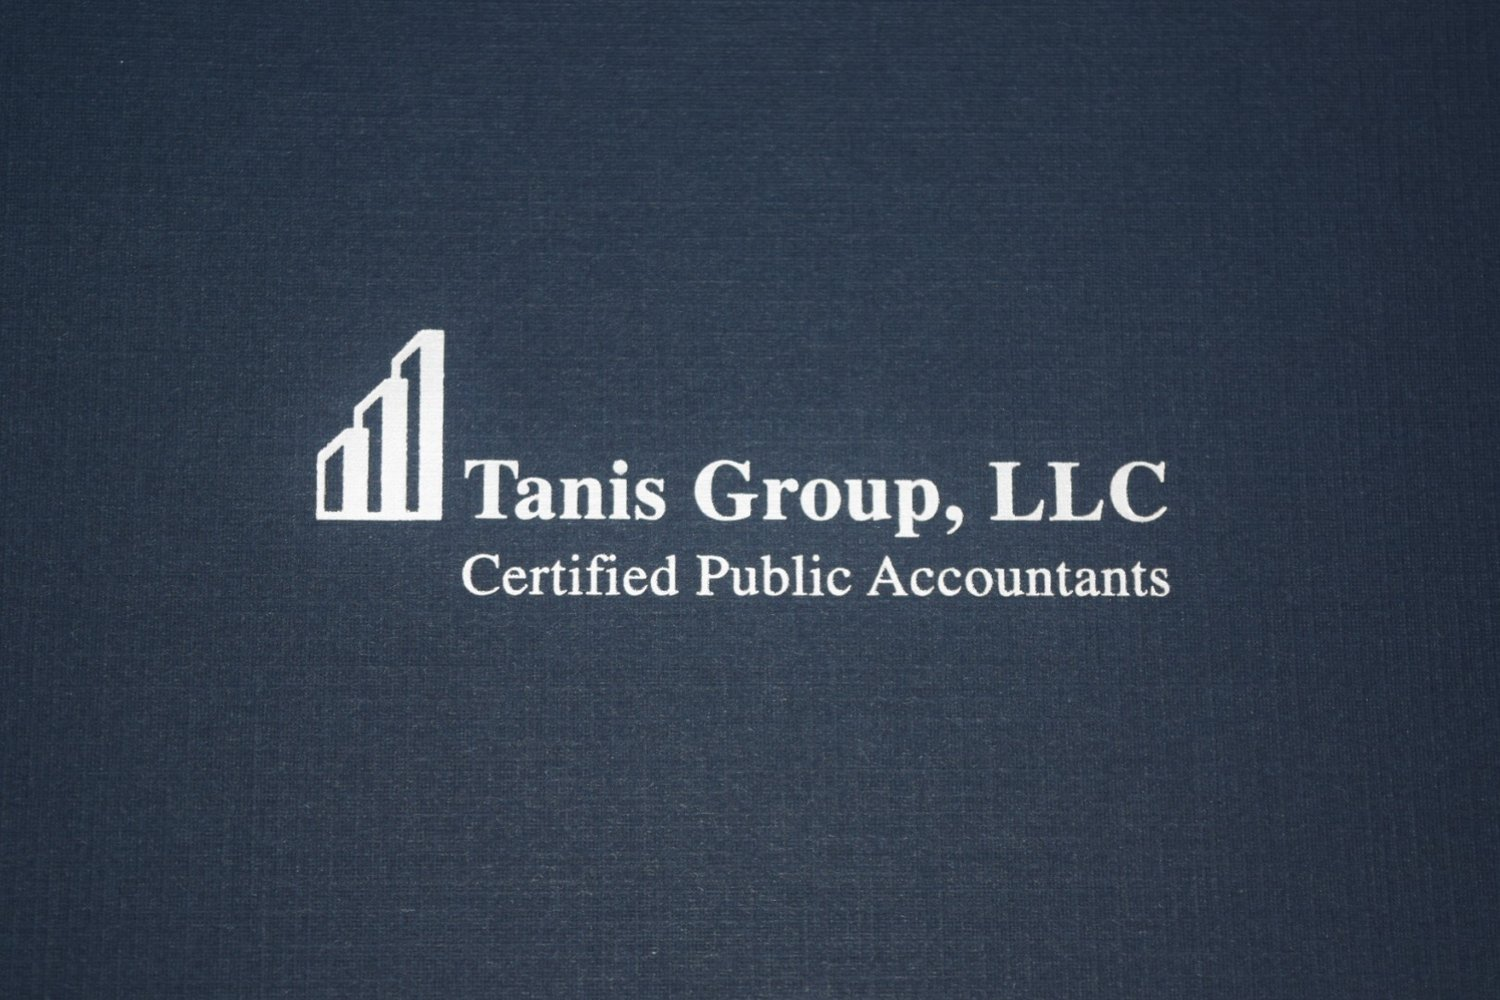 Tanis Group, LLC, Certified Public Accountants